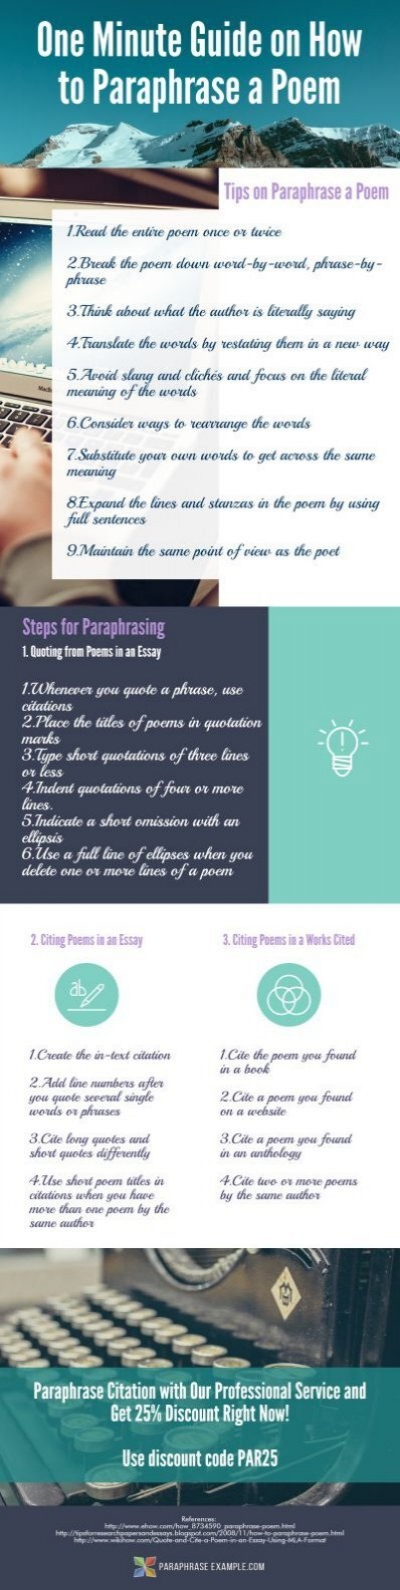 how to paraphrase a poem